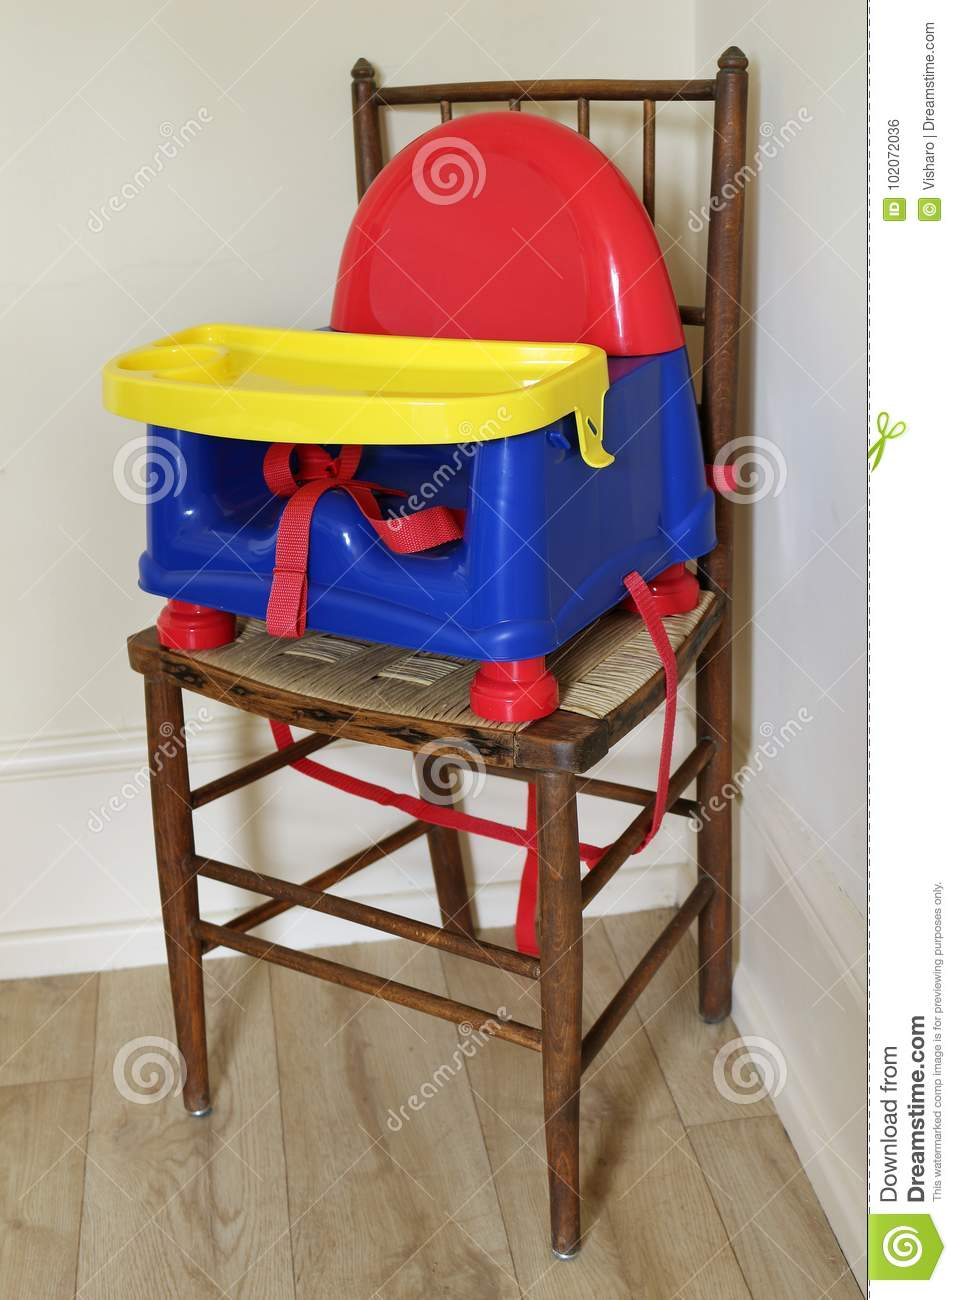 High Chair stock photo. Image of household, children - 102072036